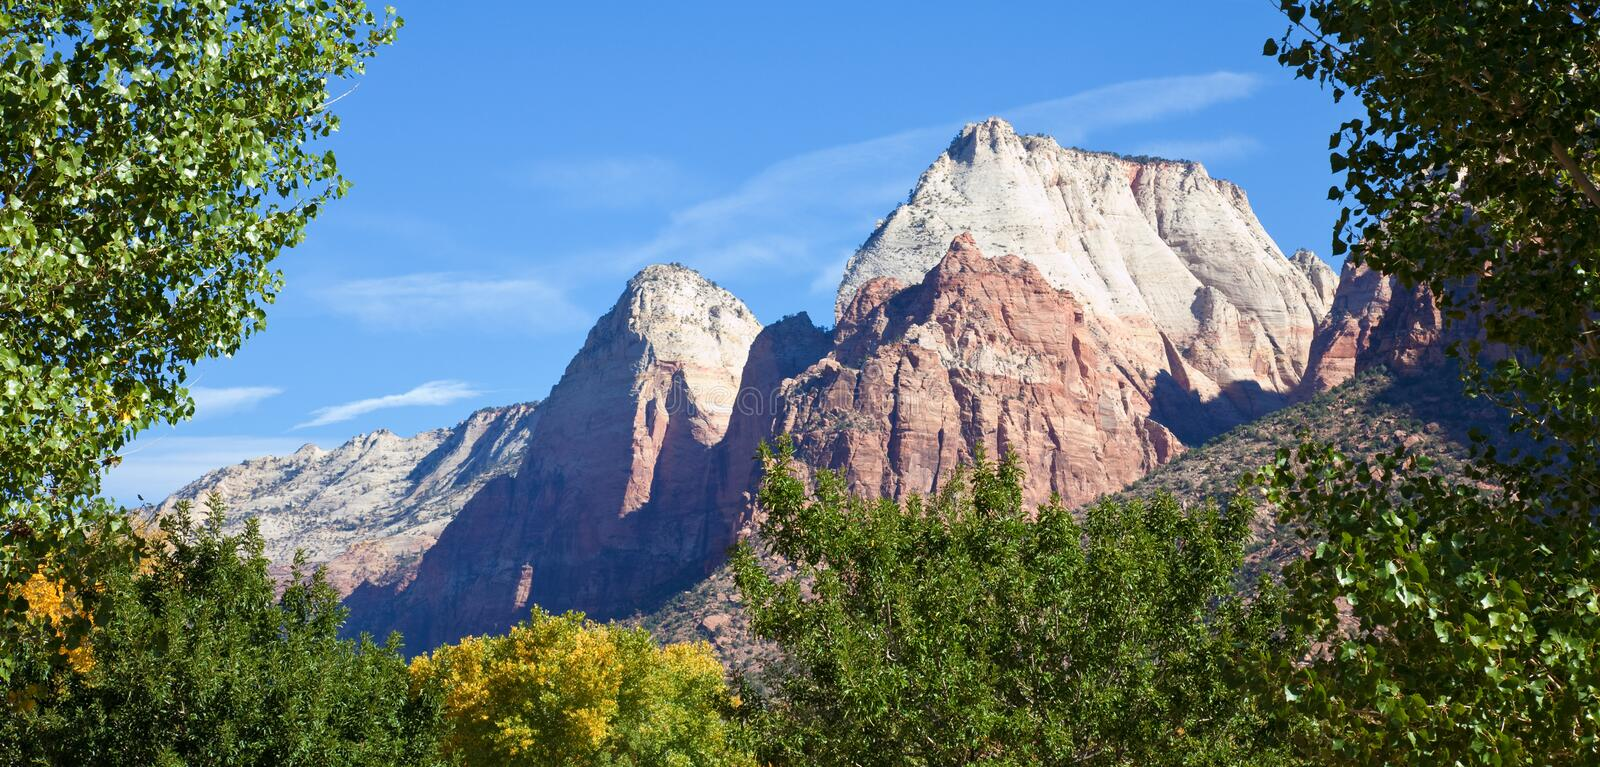 Zion Canyon Peaks Royalty Free Stock Image